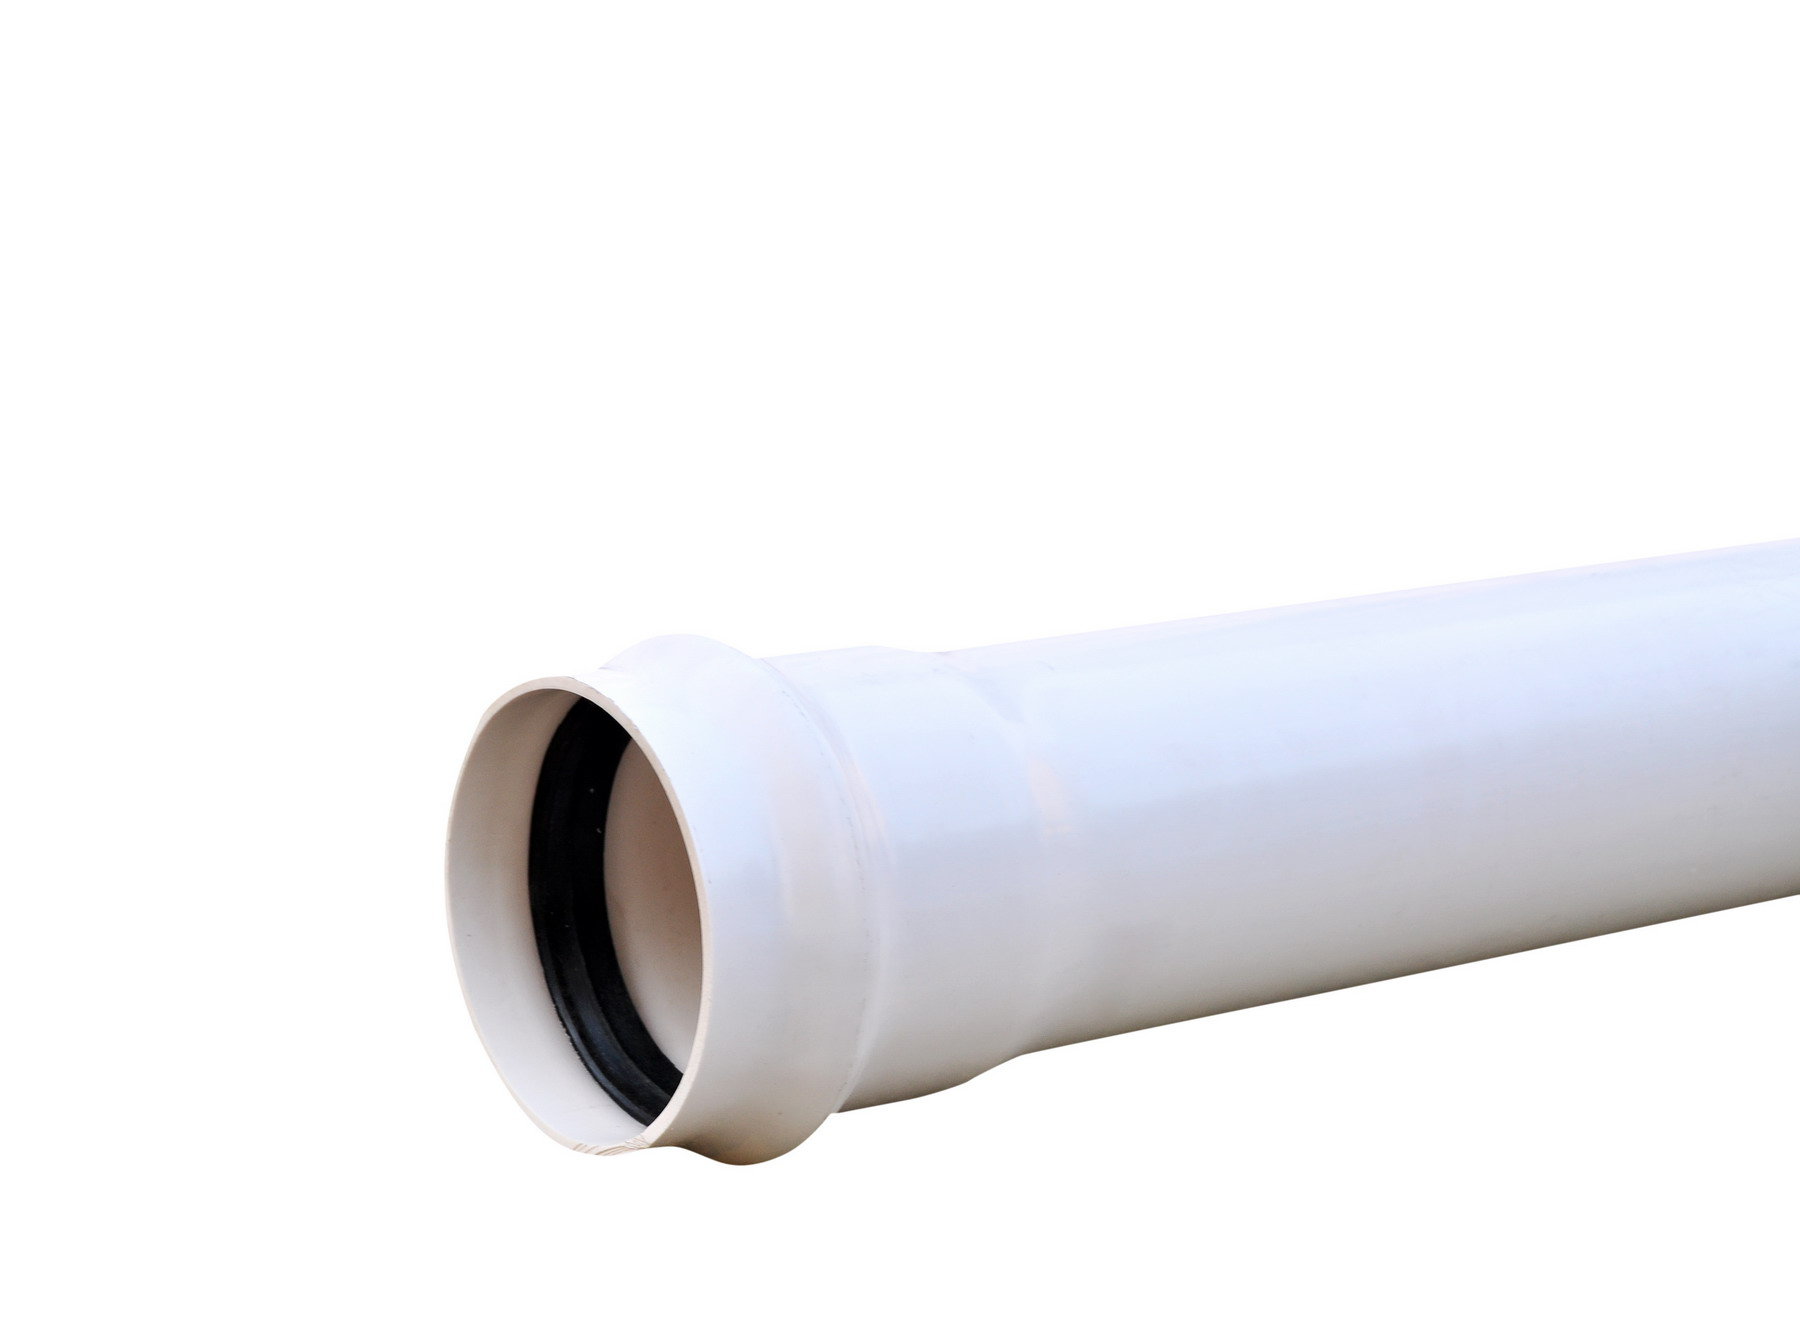 Pipe - Products